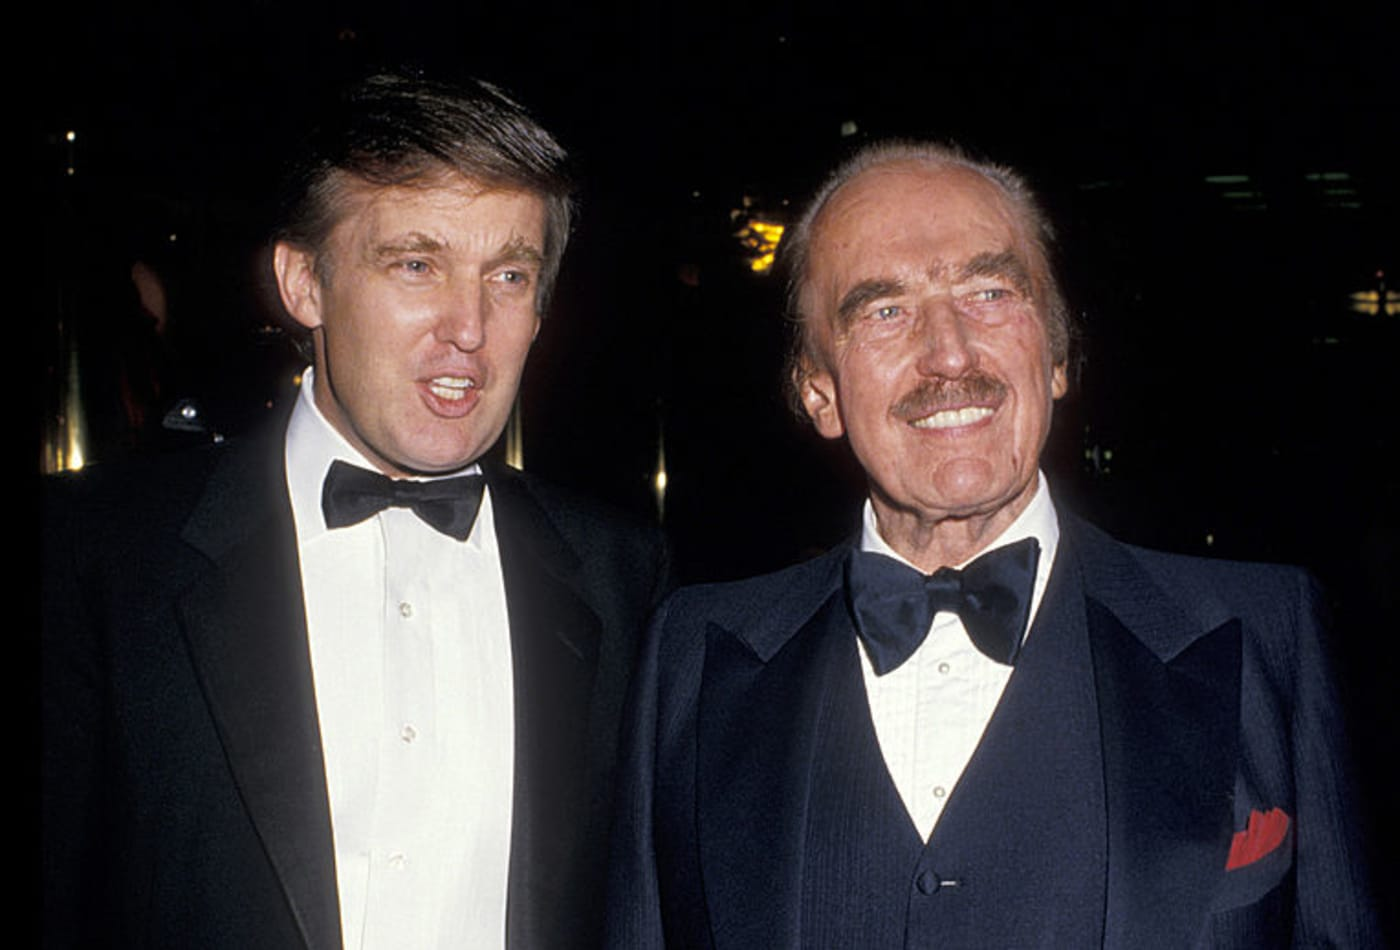 Donald Trump and Fred Trump in December, 1987.